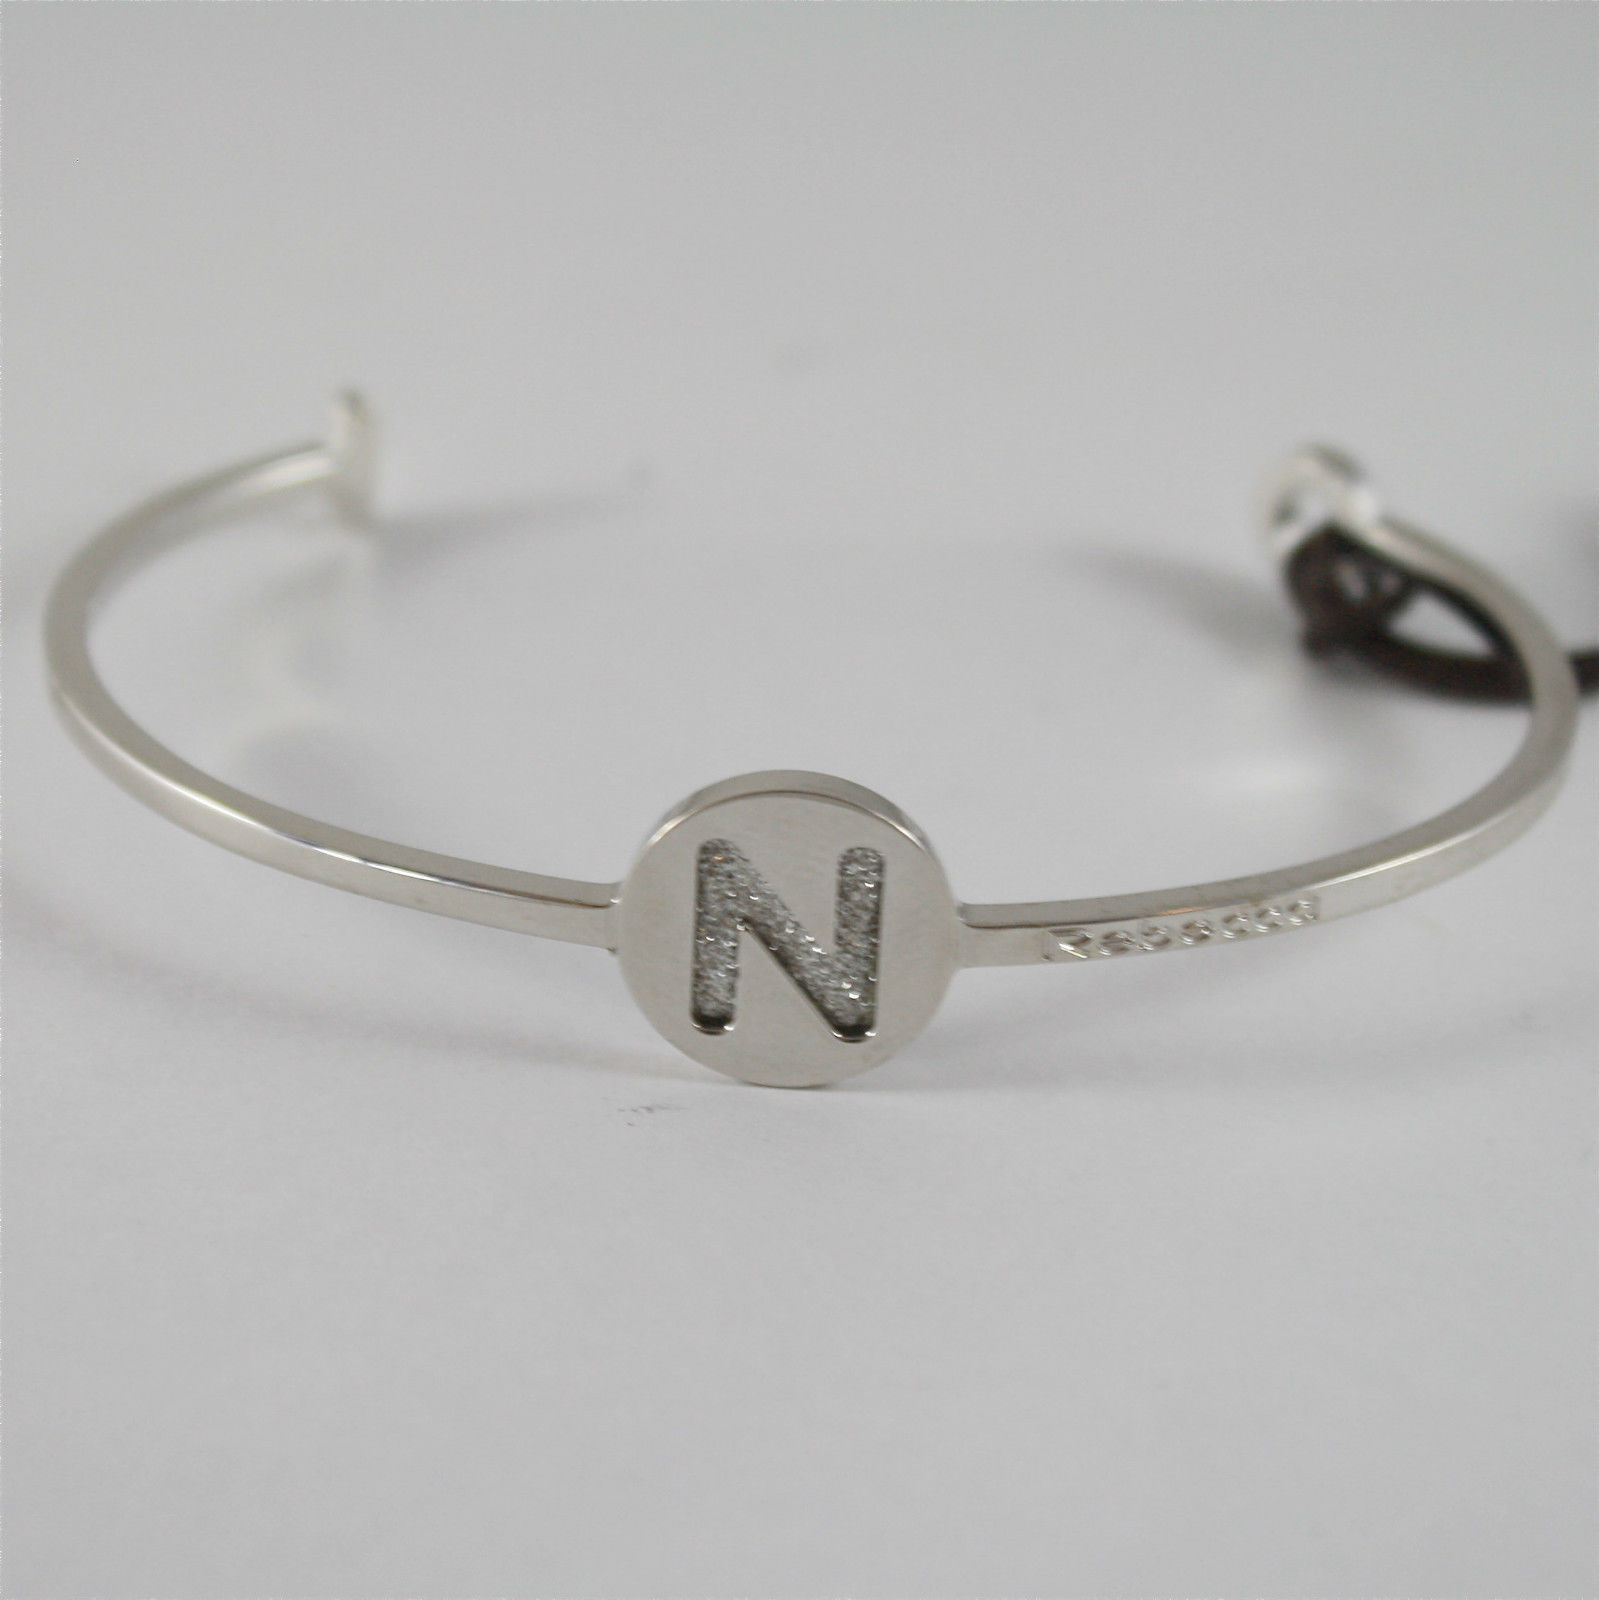 WHITE GOLD PLATED BANGLE BRONZE REBECCA BRACELET WITH N BWGBBN64 MADE IN ITALY